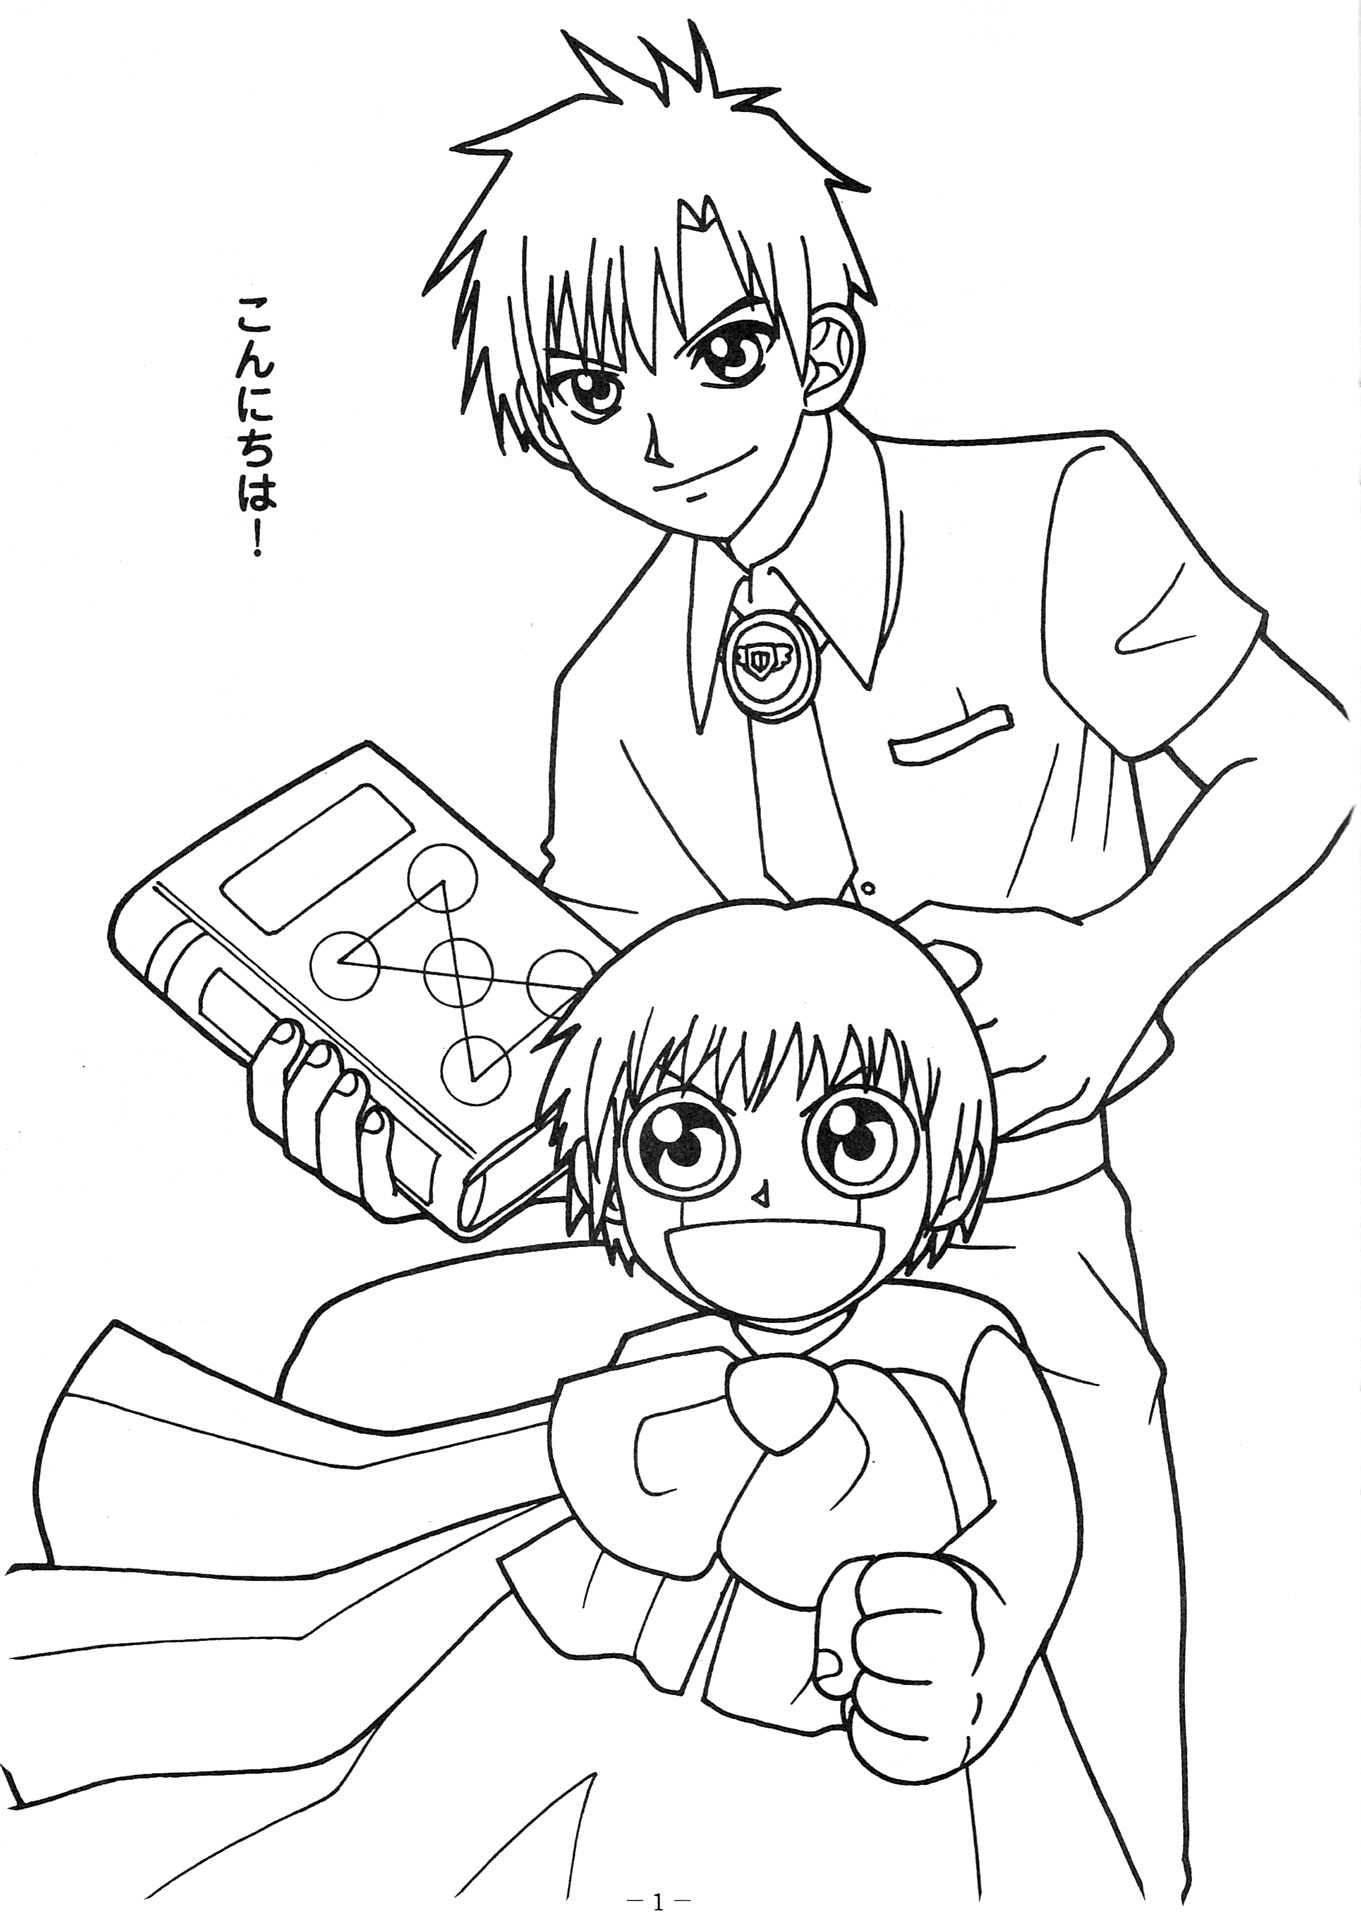 zatch bell coloring pages | Lollos Colouring Pages Sketch Coloring Page